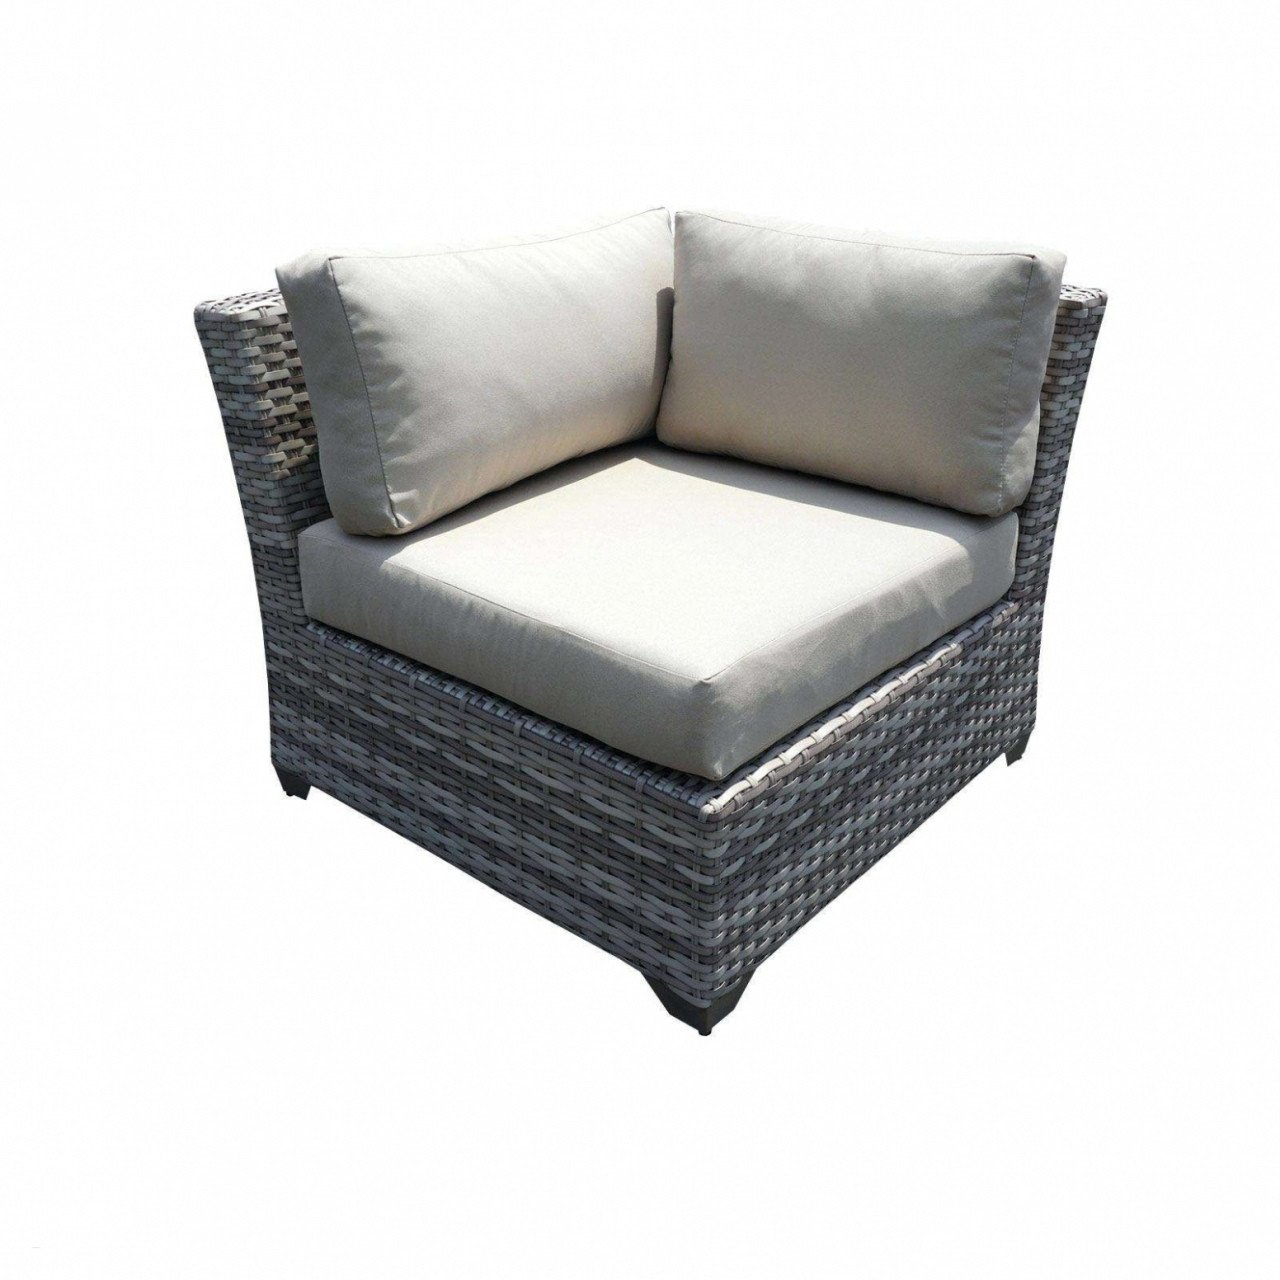 Bedroom Dressers On Sale Inspirational Outdoor Daybed Couch Discount Luxus Patio Furniture Daybed